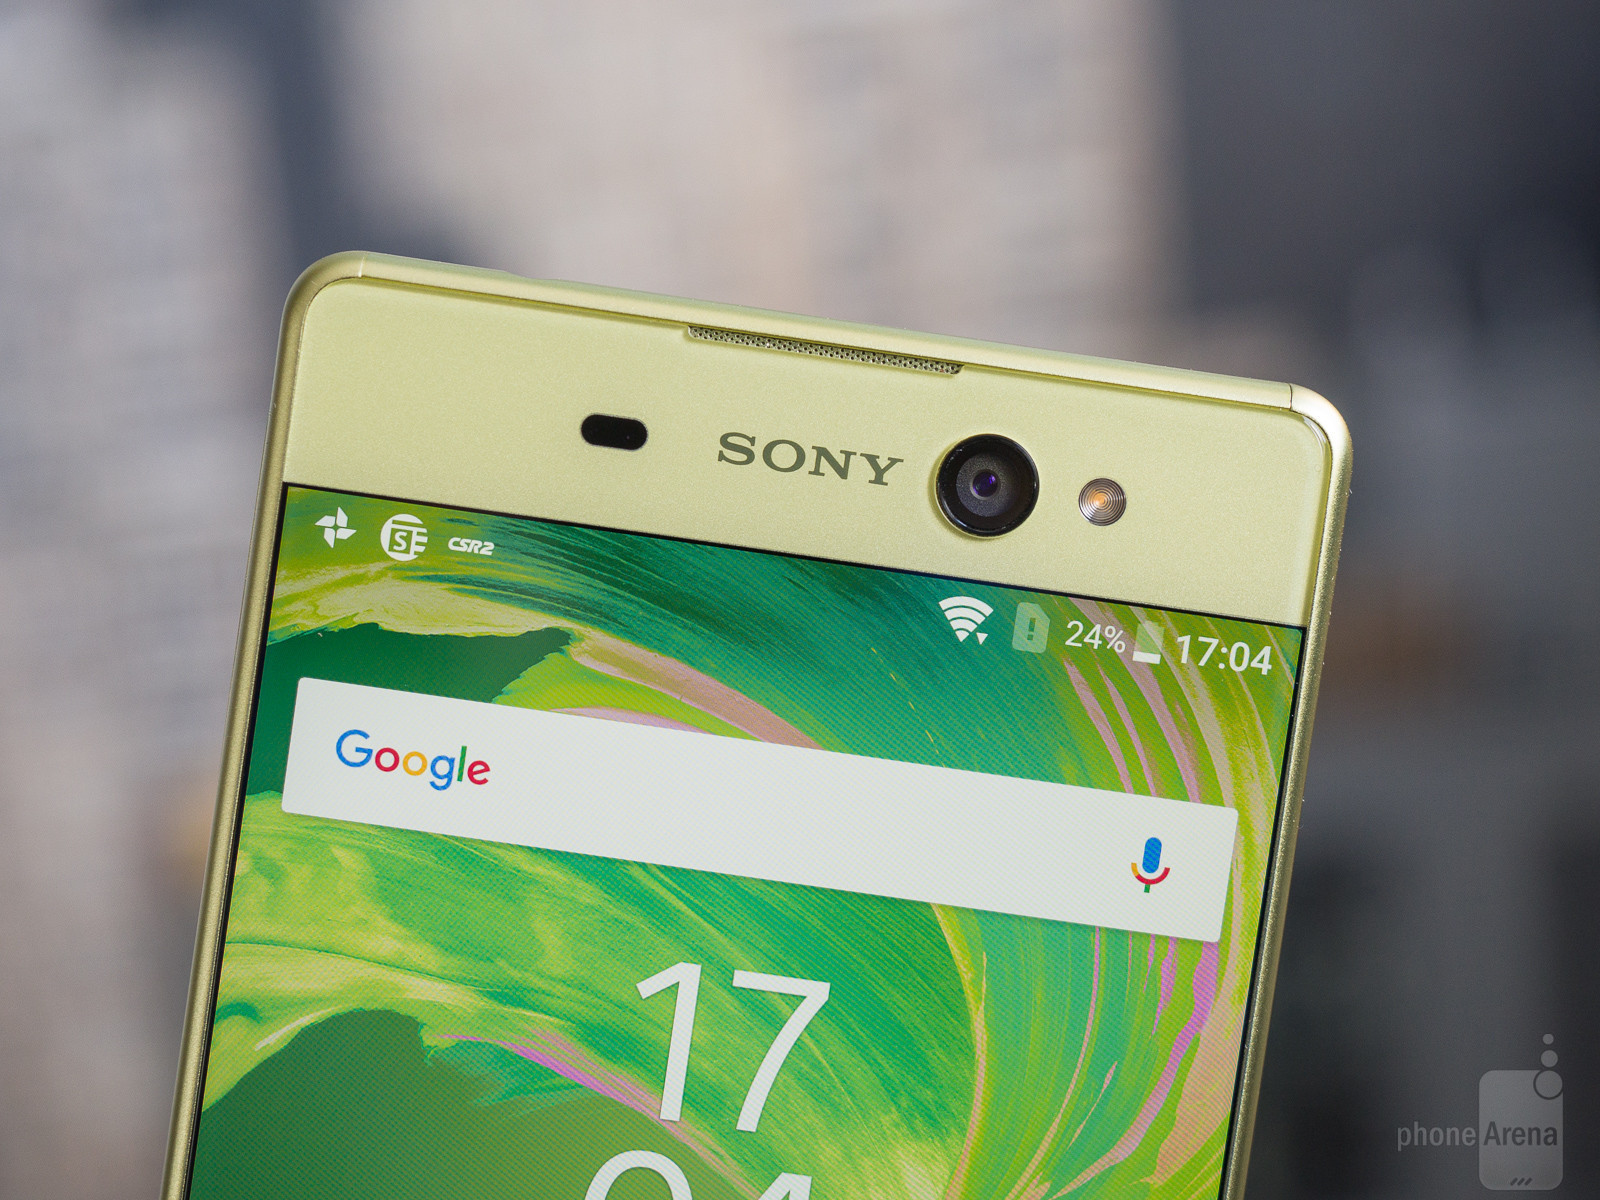 http://click.ir/wp-content/uploads/2016/07/Sony-Xperia-XA-Ultra-Review-005.jpg